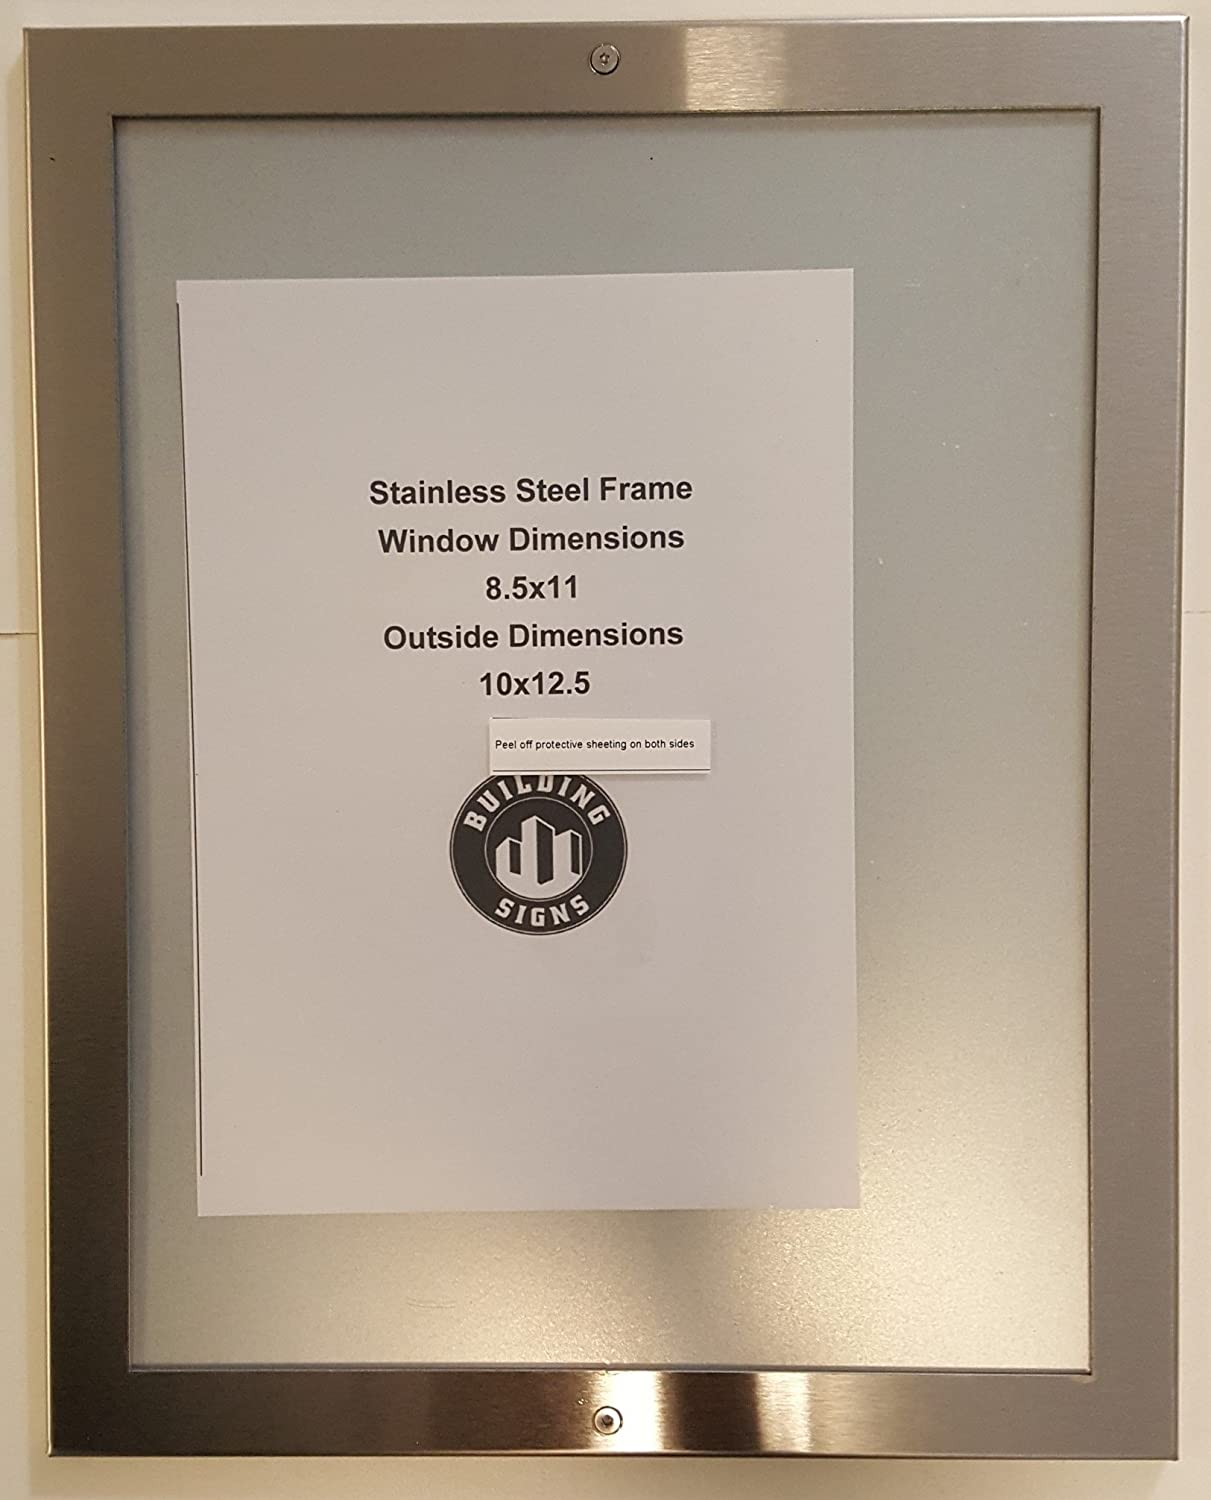 ELEVATOR PICTURE FRAME 8.5X11 stainless Steel: Amazon.com ...